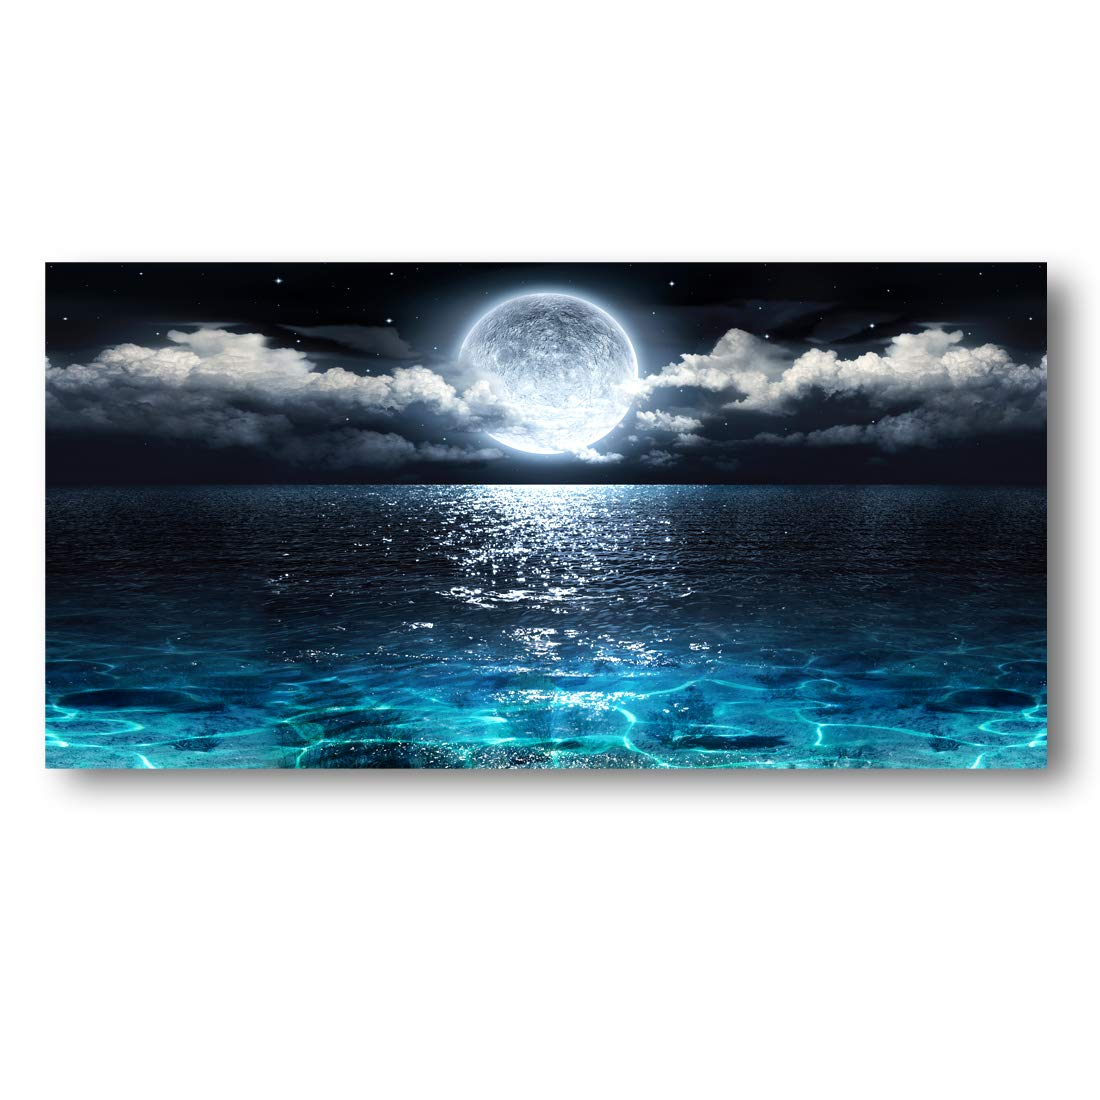 Wall Art Moon Sea Ocean Landscape Picture Canvas Wall Art Print Paintings Modern Artwork for Living Room Wall Decor and Home Décor Framed Ready to Hang,2cm Thick Frame, Waterproof Artwork.